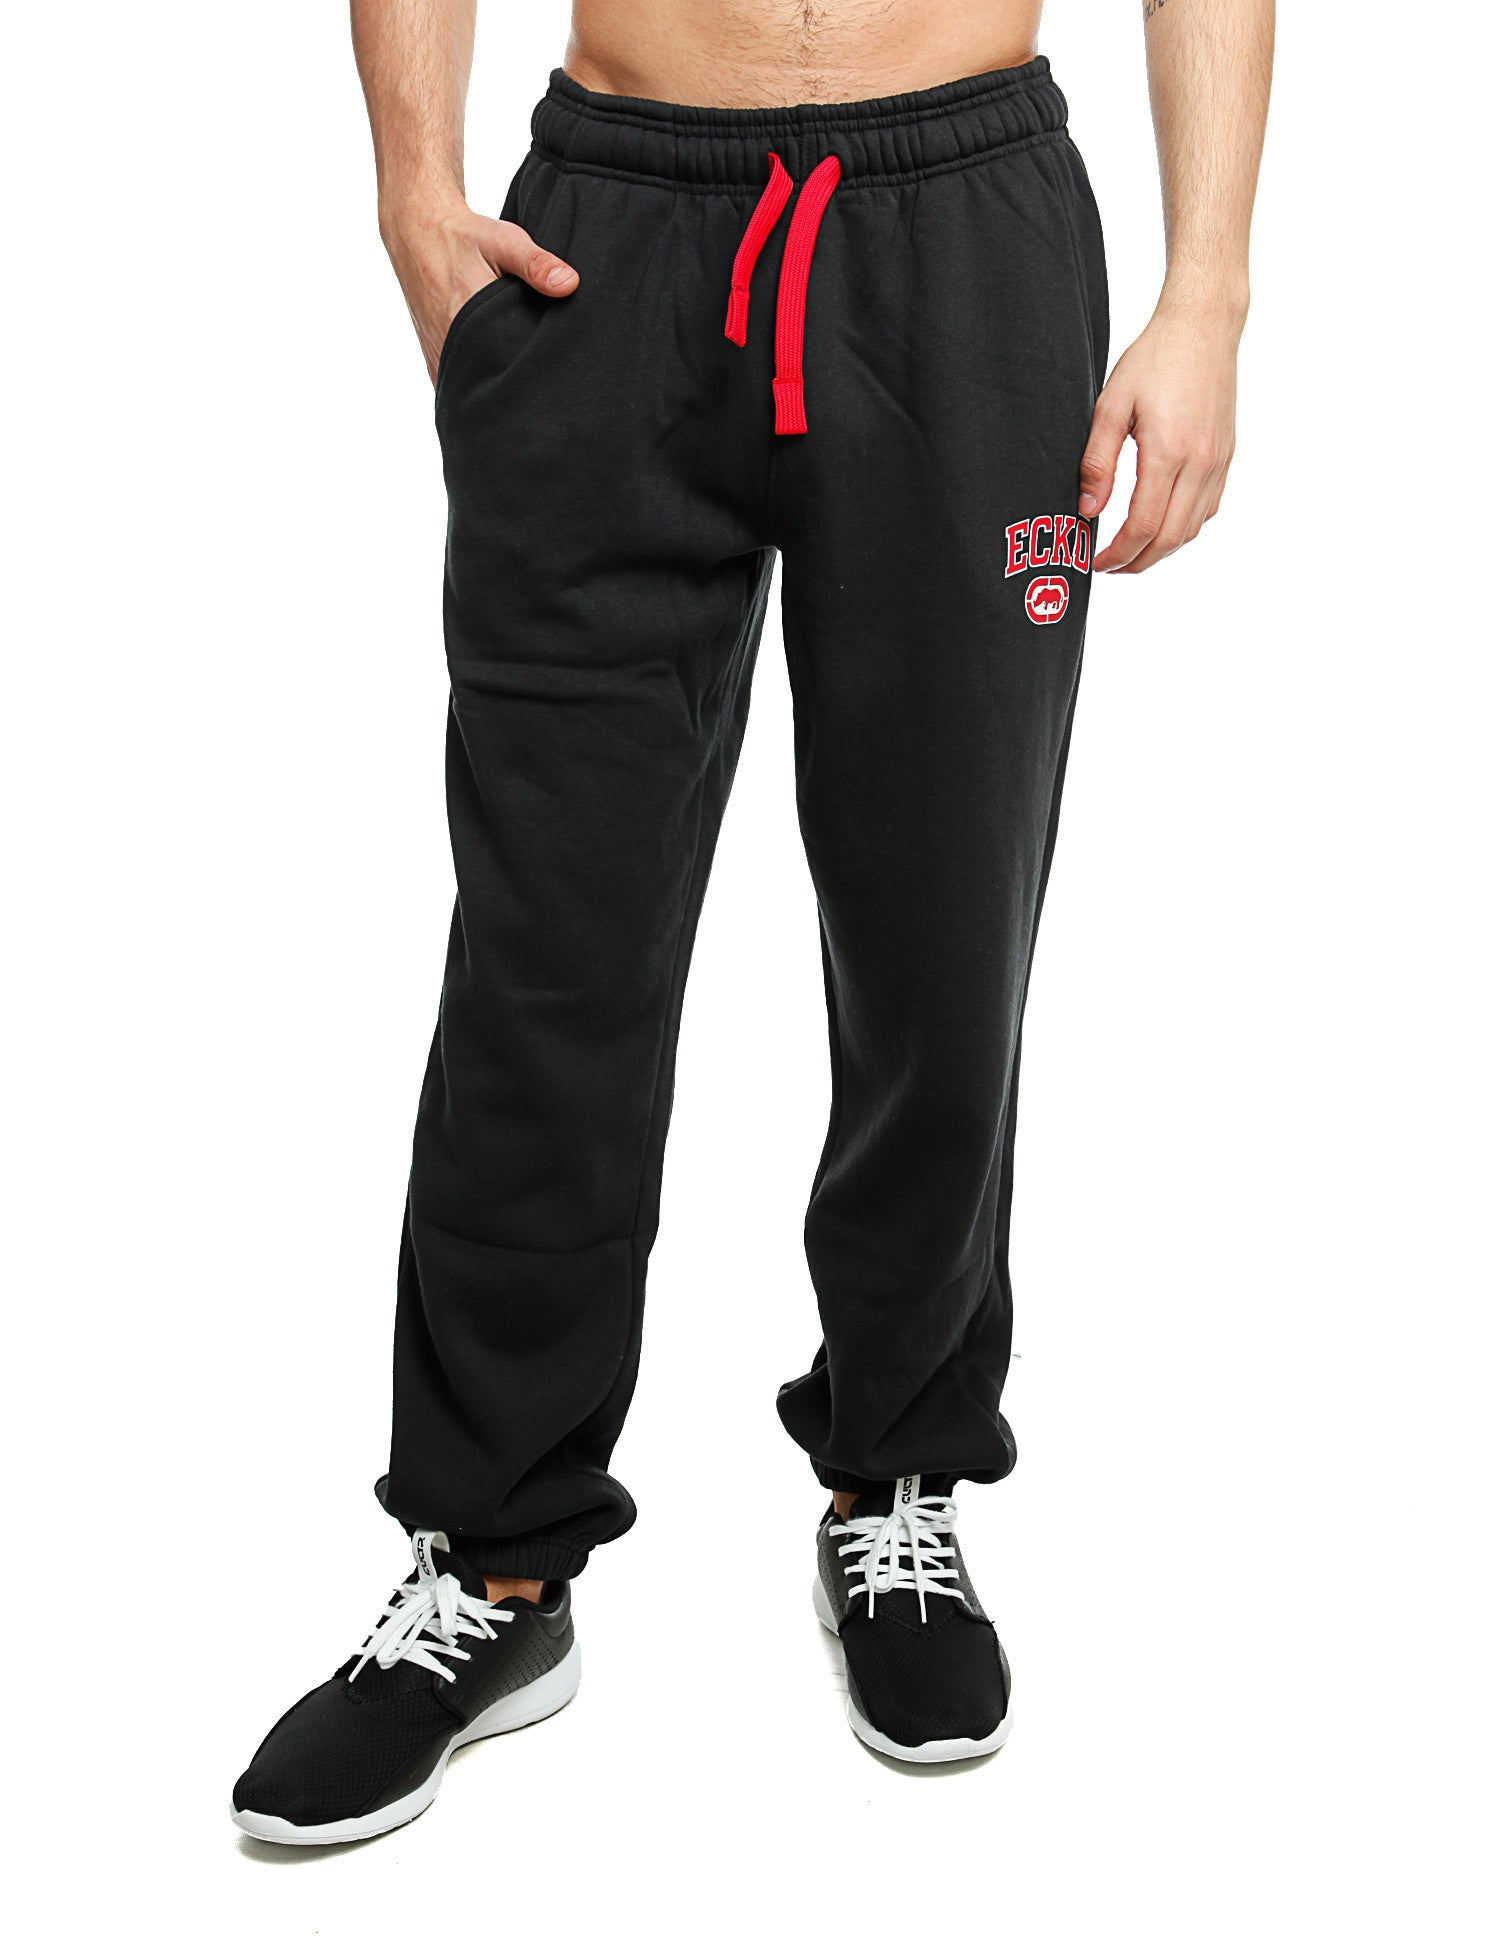 Image of Ecko Sweatpants Wharf  Black